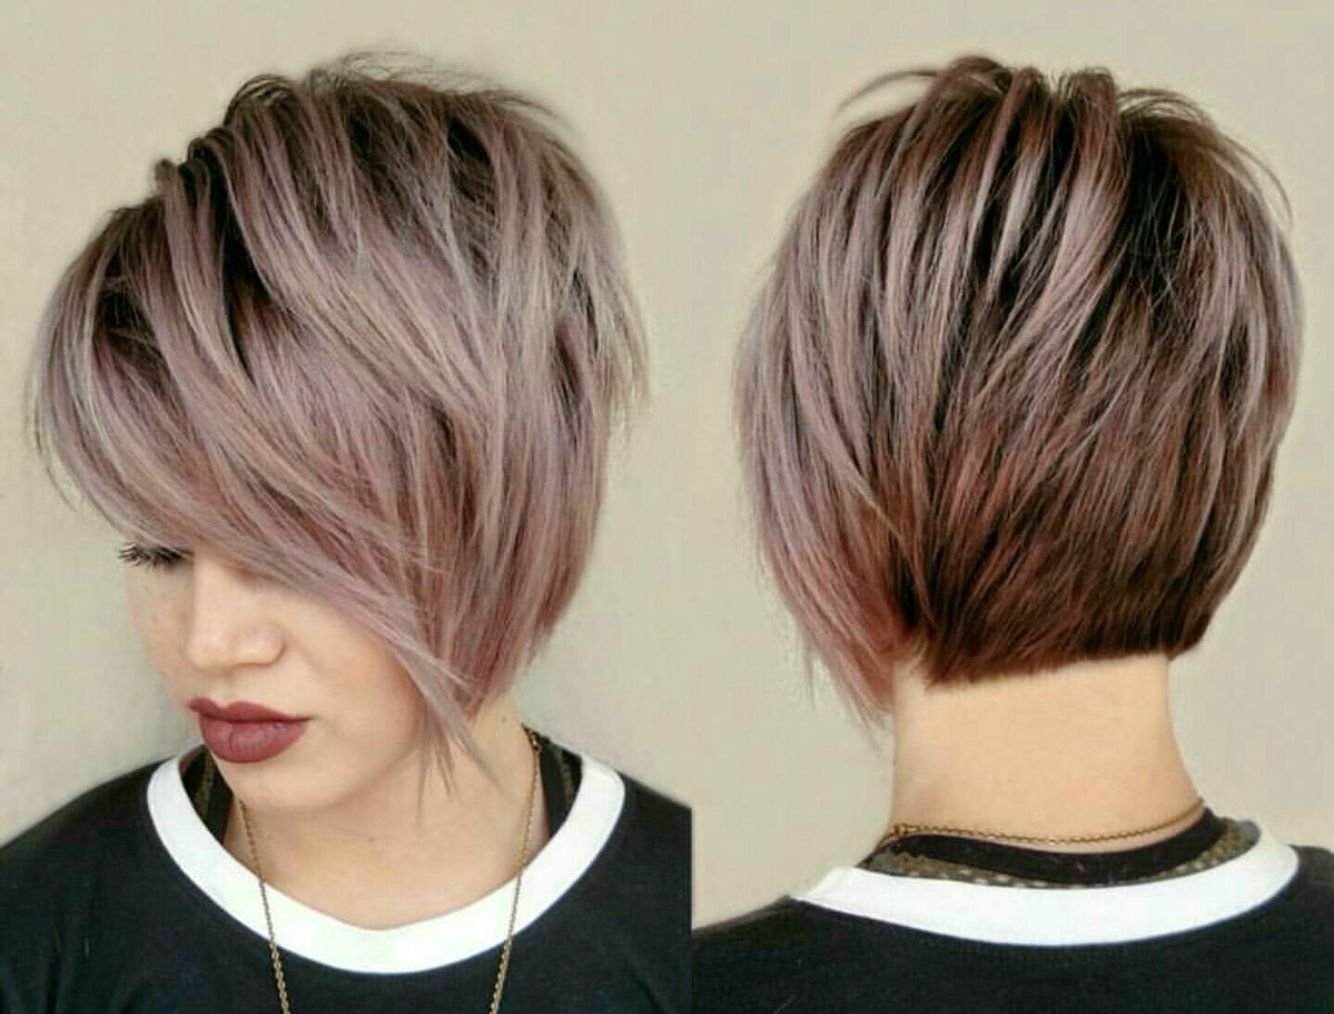 Short Razor Cut Hairstyles Love The Cut And Color On This Cut Color Pinterest Bobs